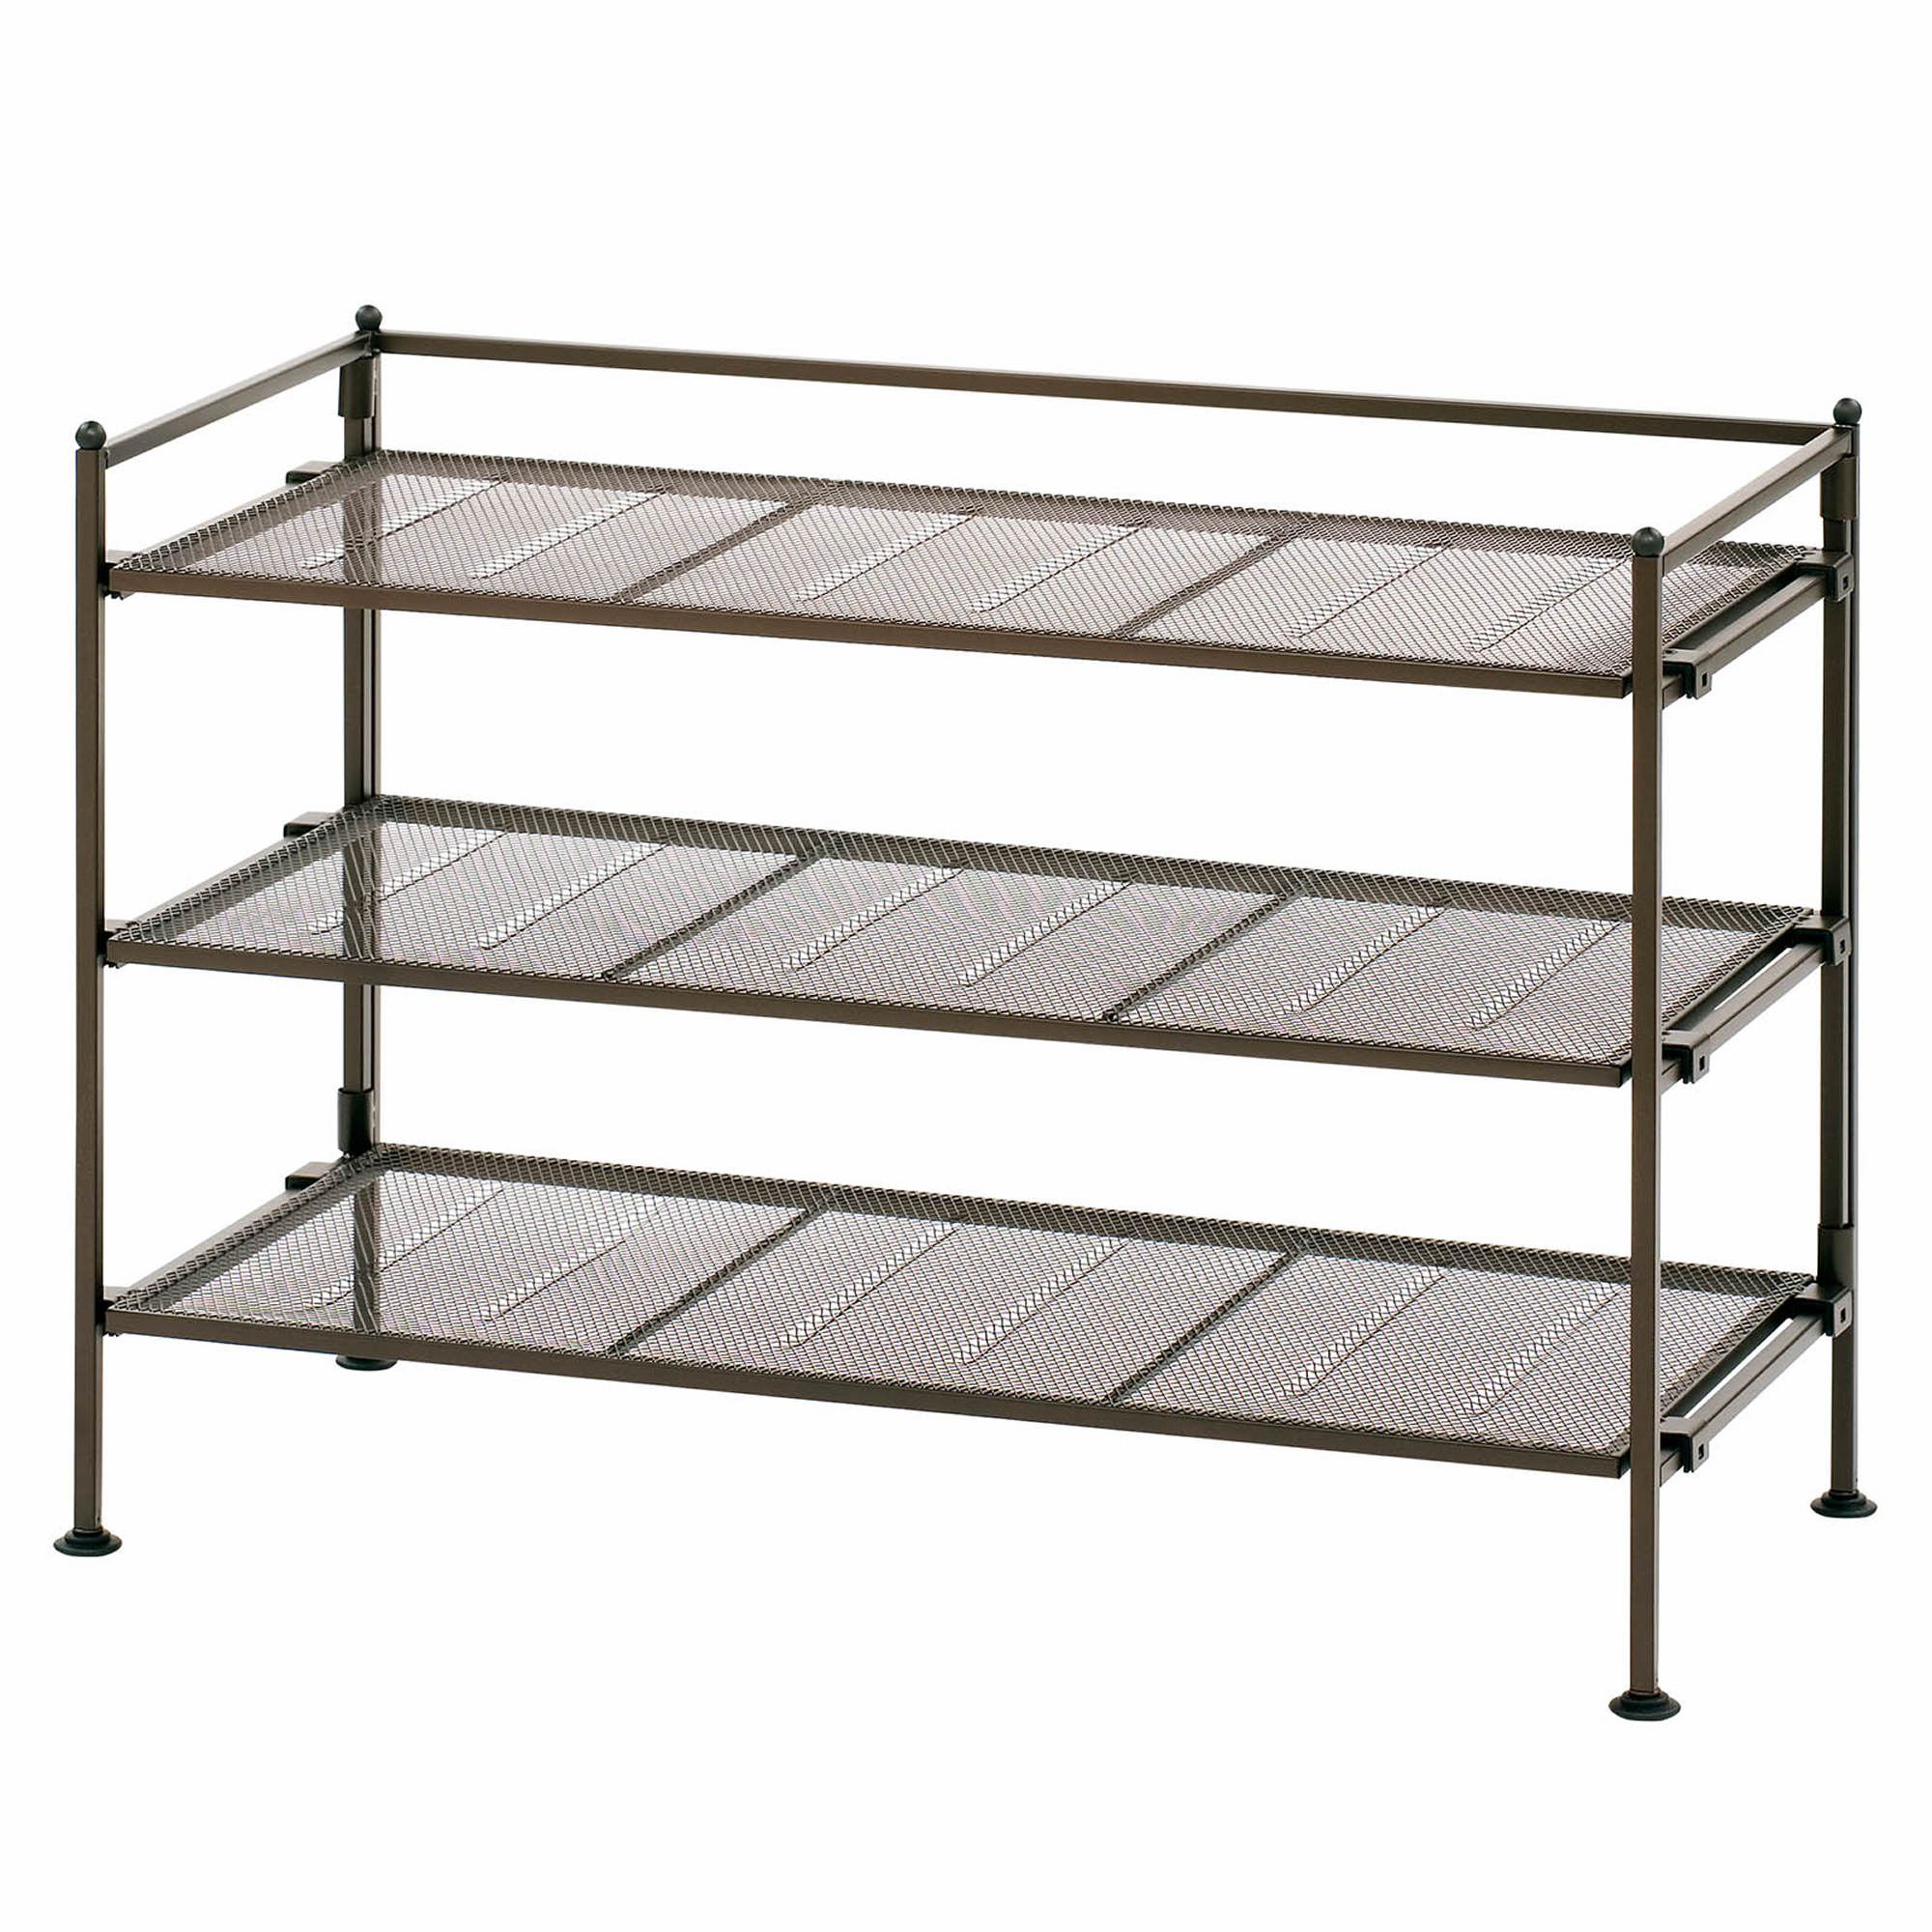 ... 3-Tier Utility and Shoe Rack - Bronze. 0 undefined; 1 undefined